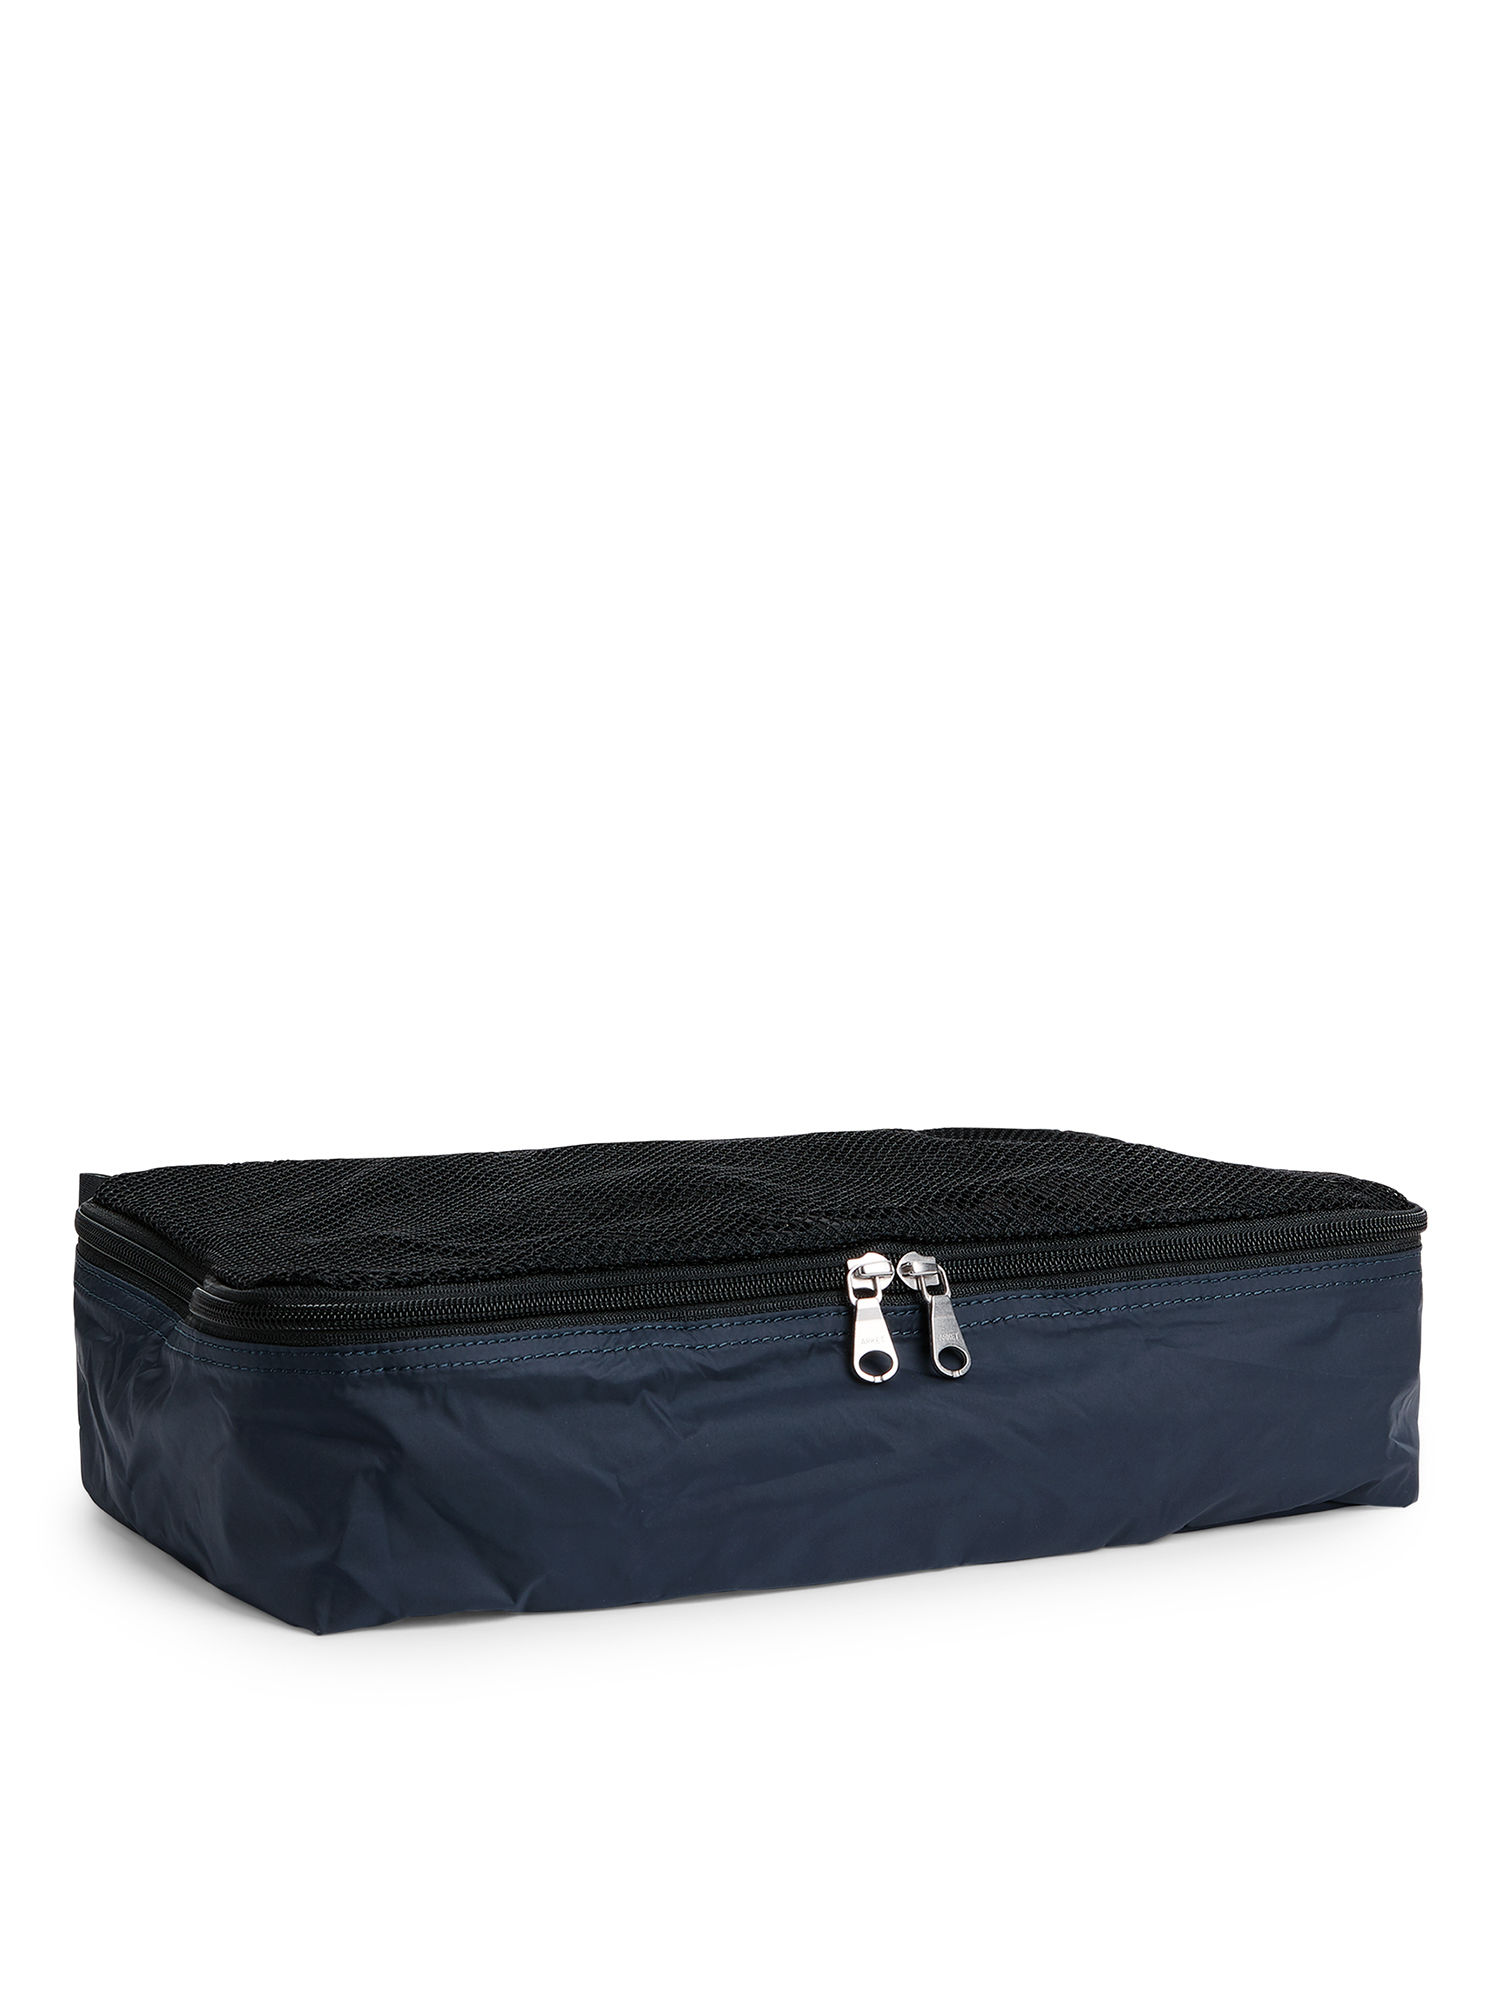 Fabric Swatch image of Arket medium garment case in blue